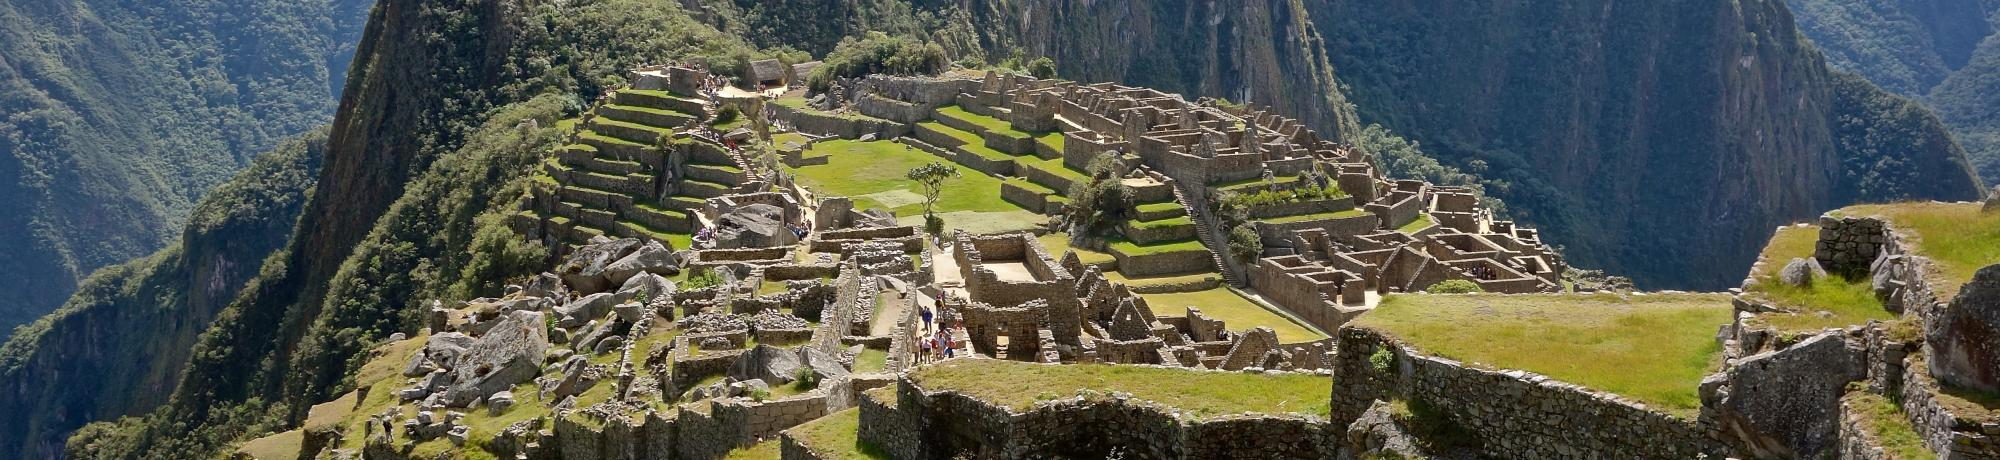 UC Davis Study Abroad, Summer Abroad Peru, Into the Andes Program, Header Image, Courses Page